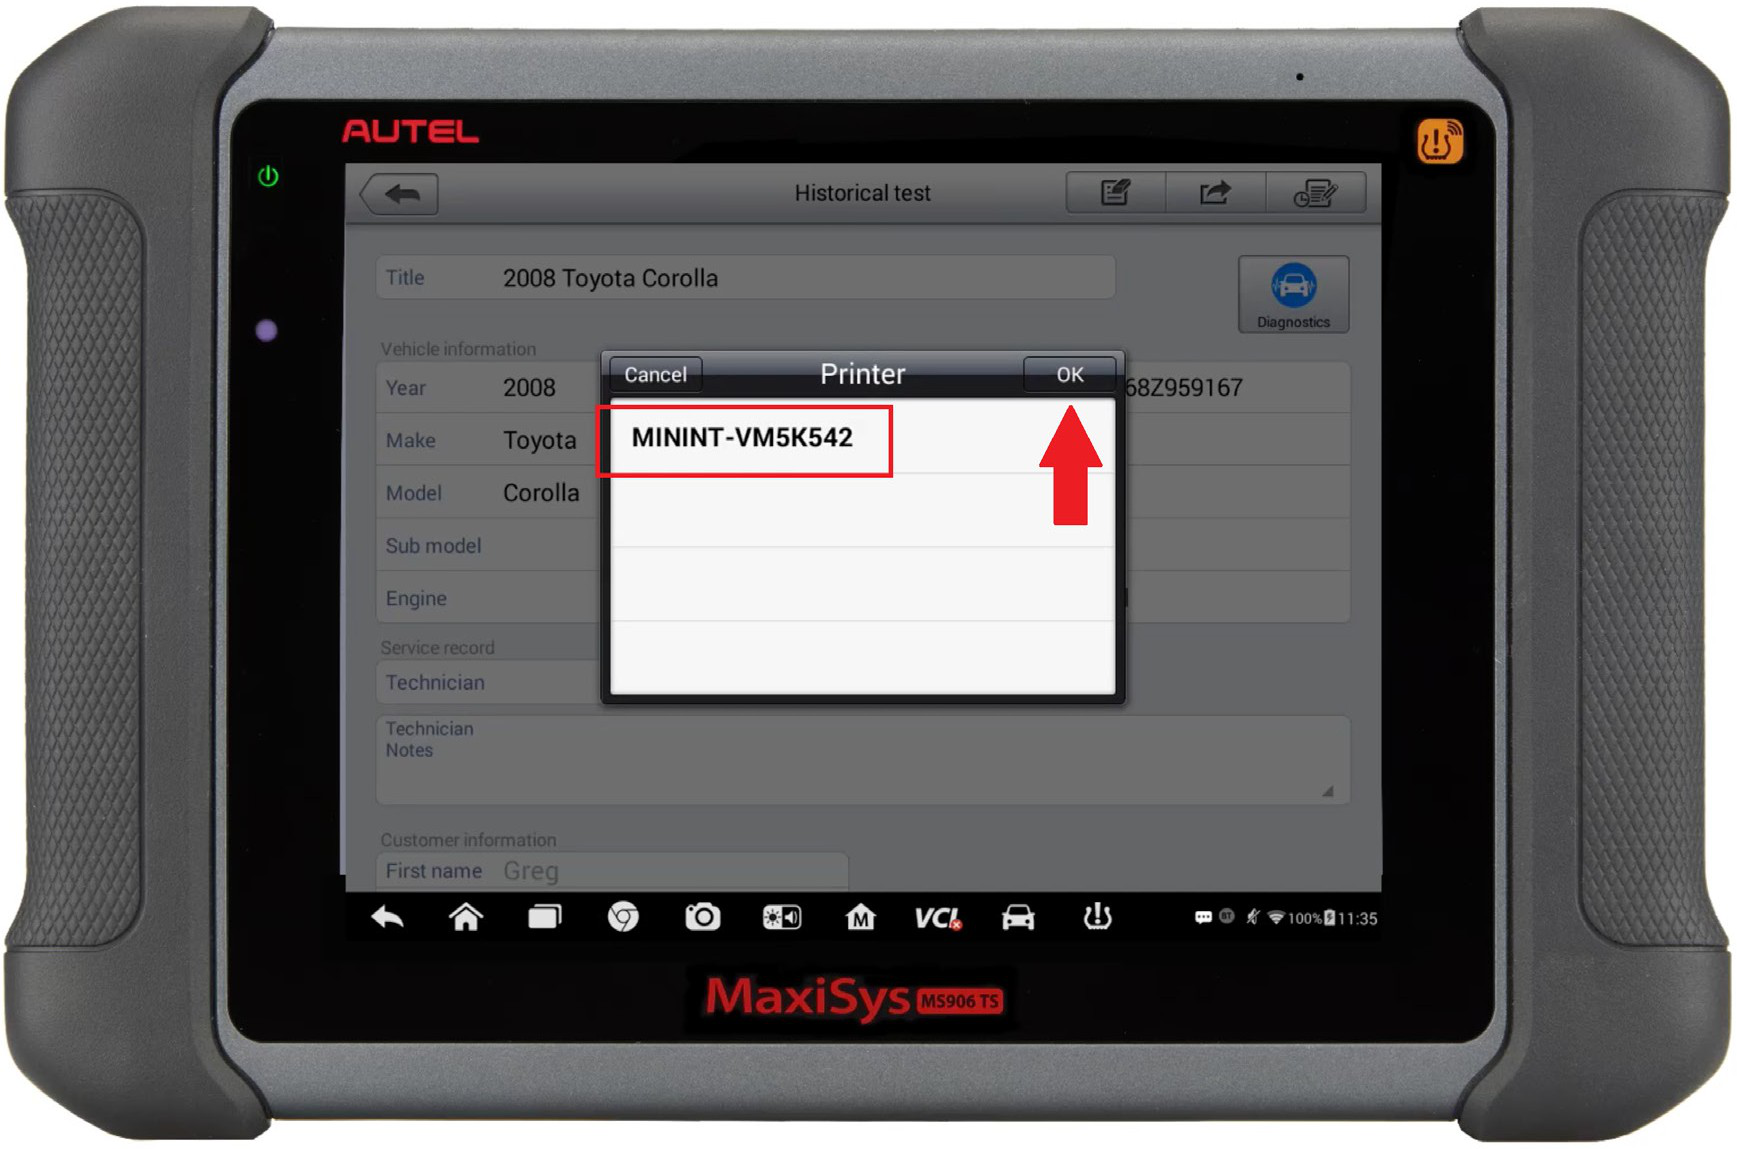 Autel-MaxiSYS-tablet-WIFI-PRINTING-Instruction-Guide-15